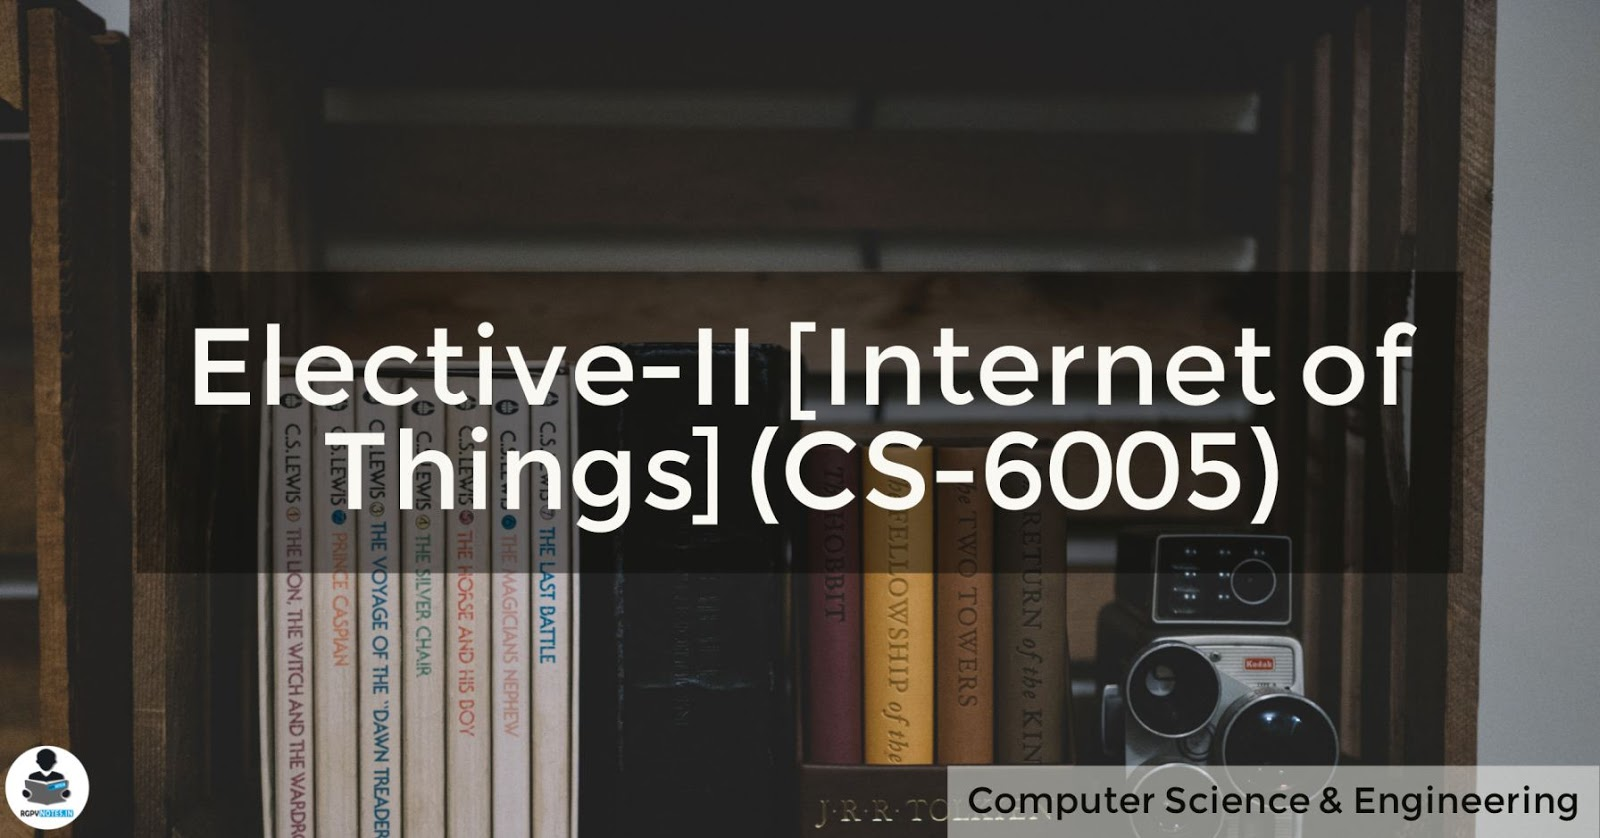 CS-6005 - Elective-II [Internet of Things] RGPV notes CBGS